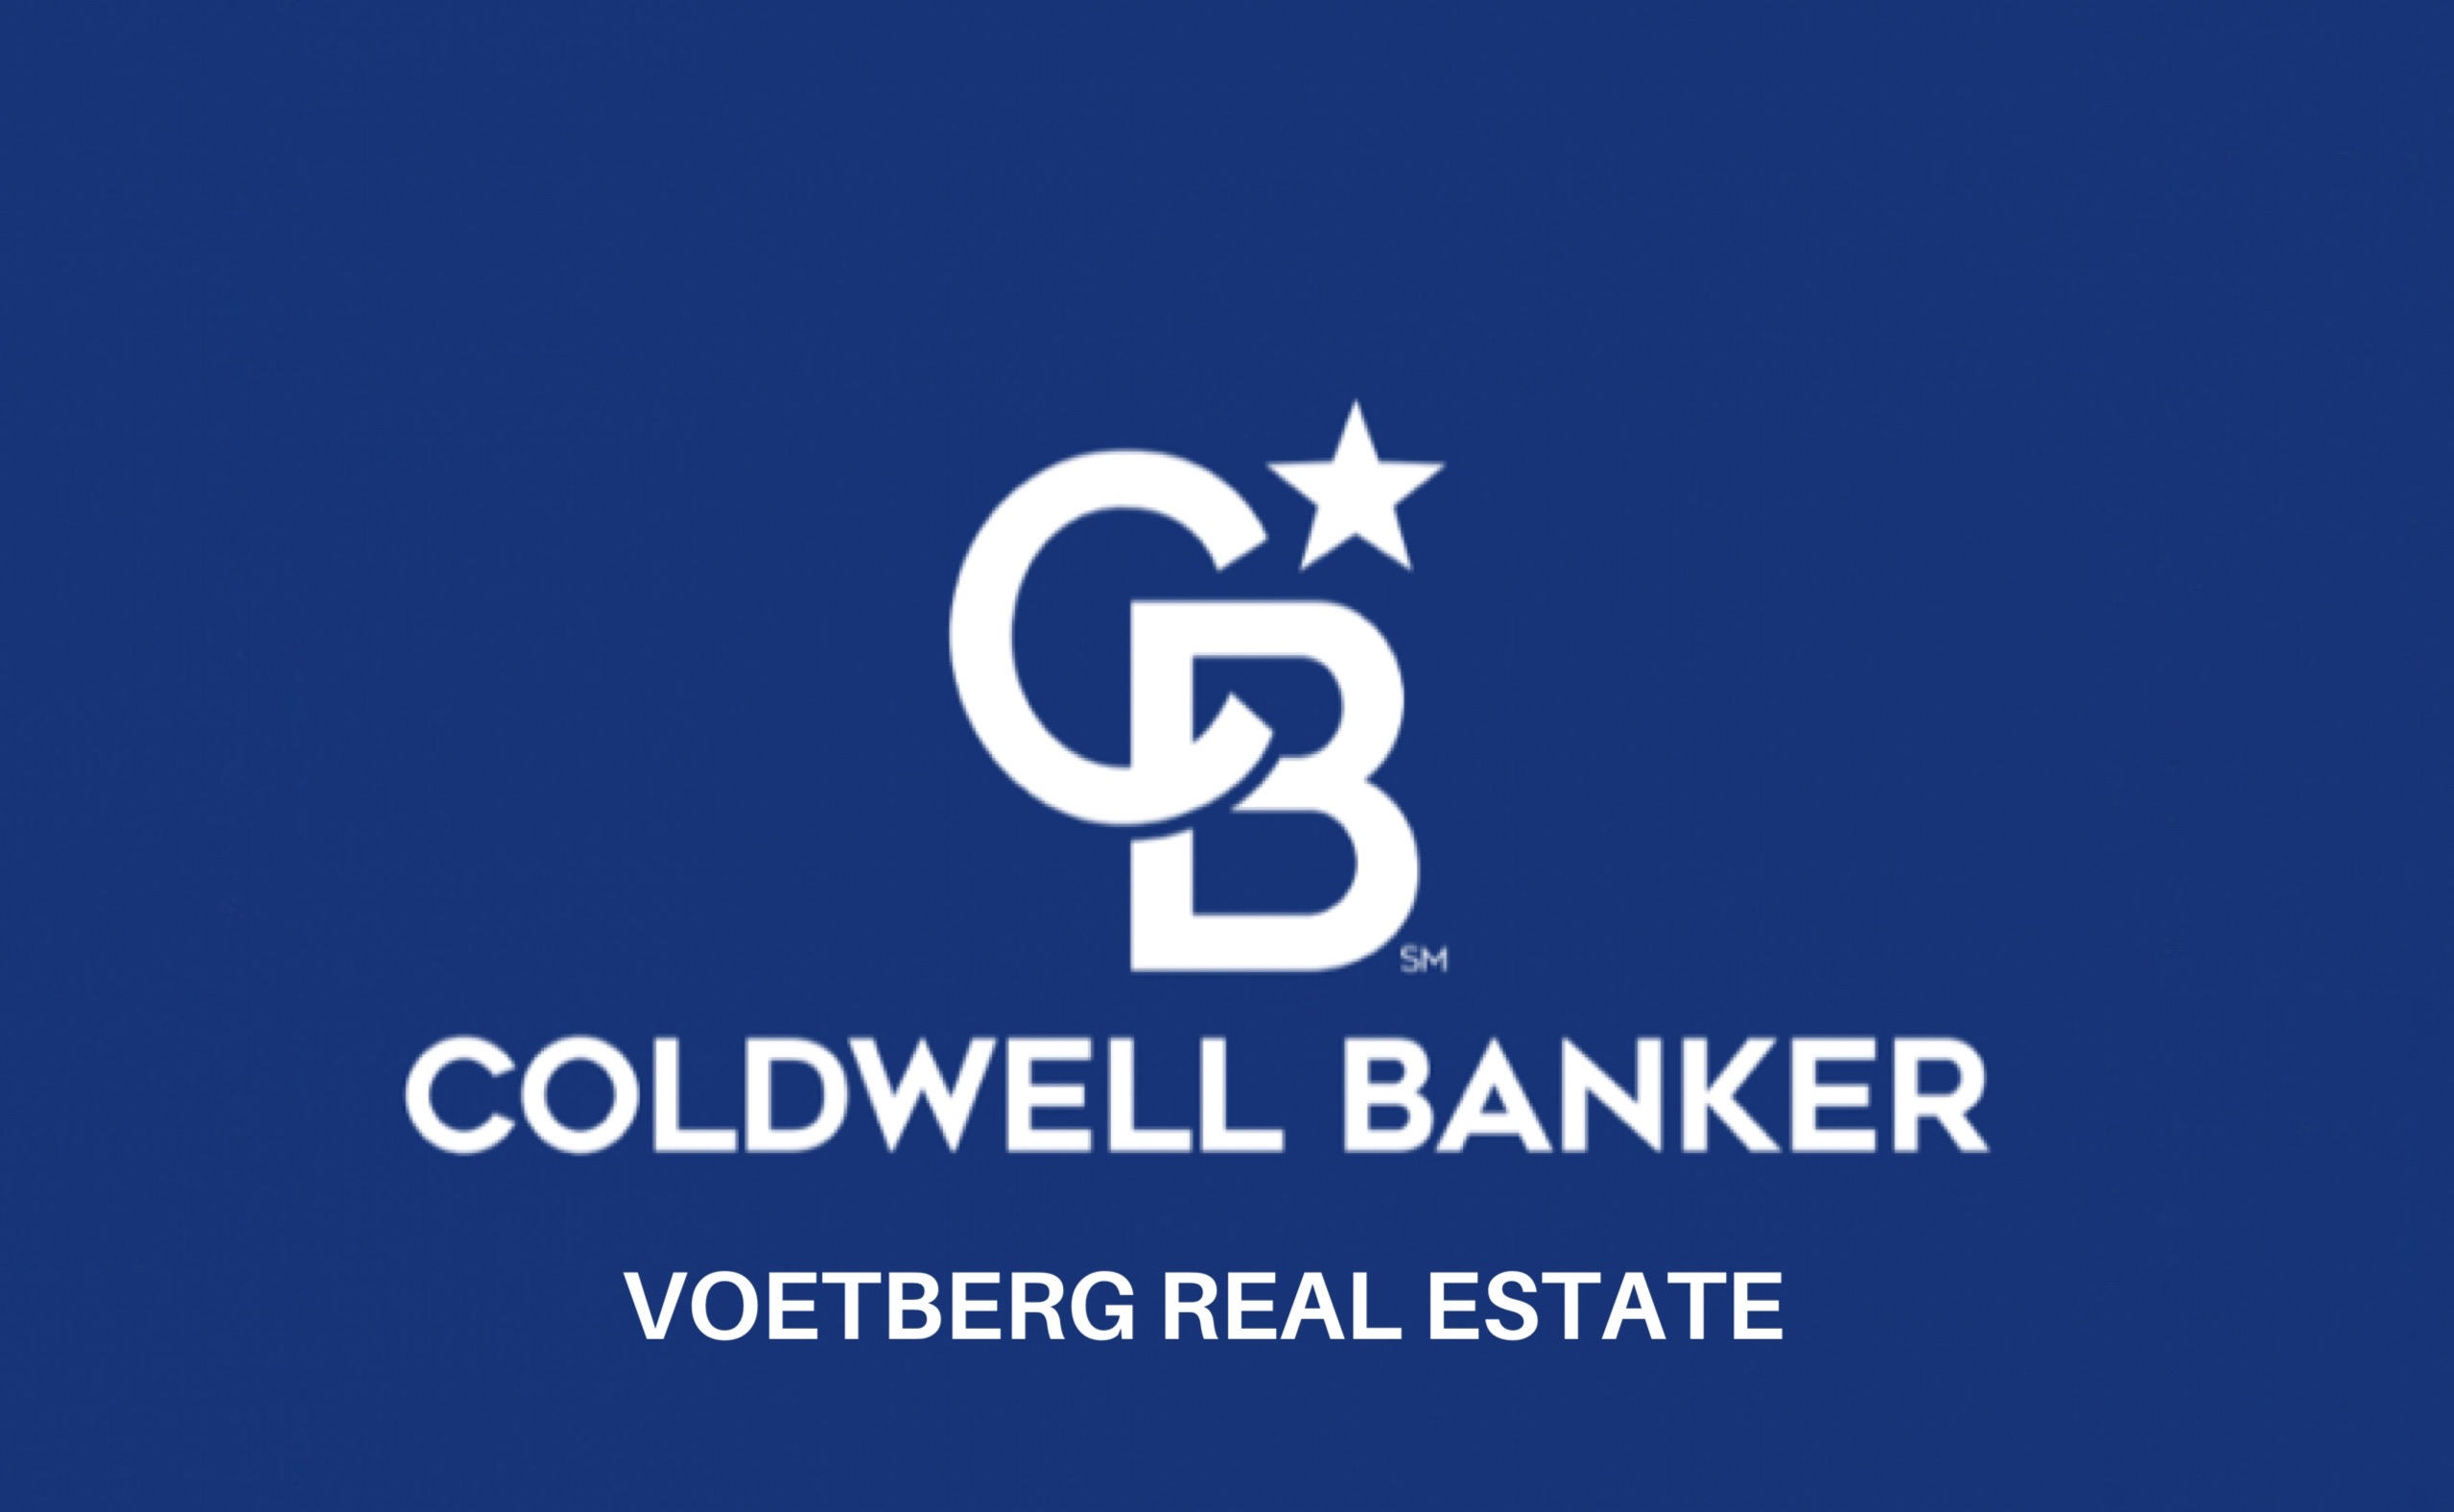 Coldwell Banker Voetberg Real Estate